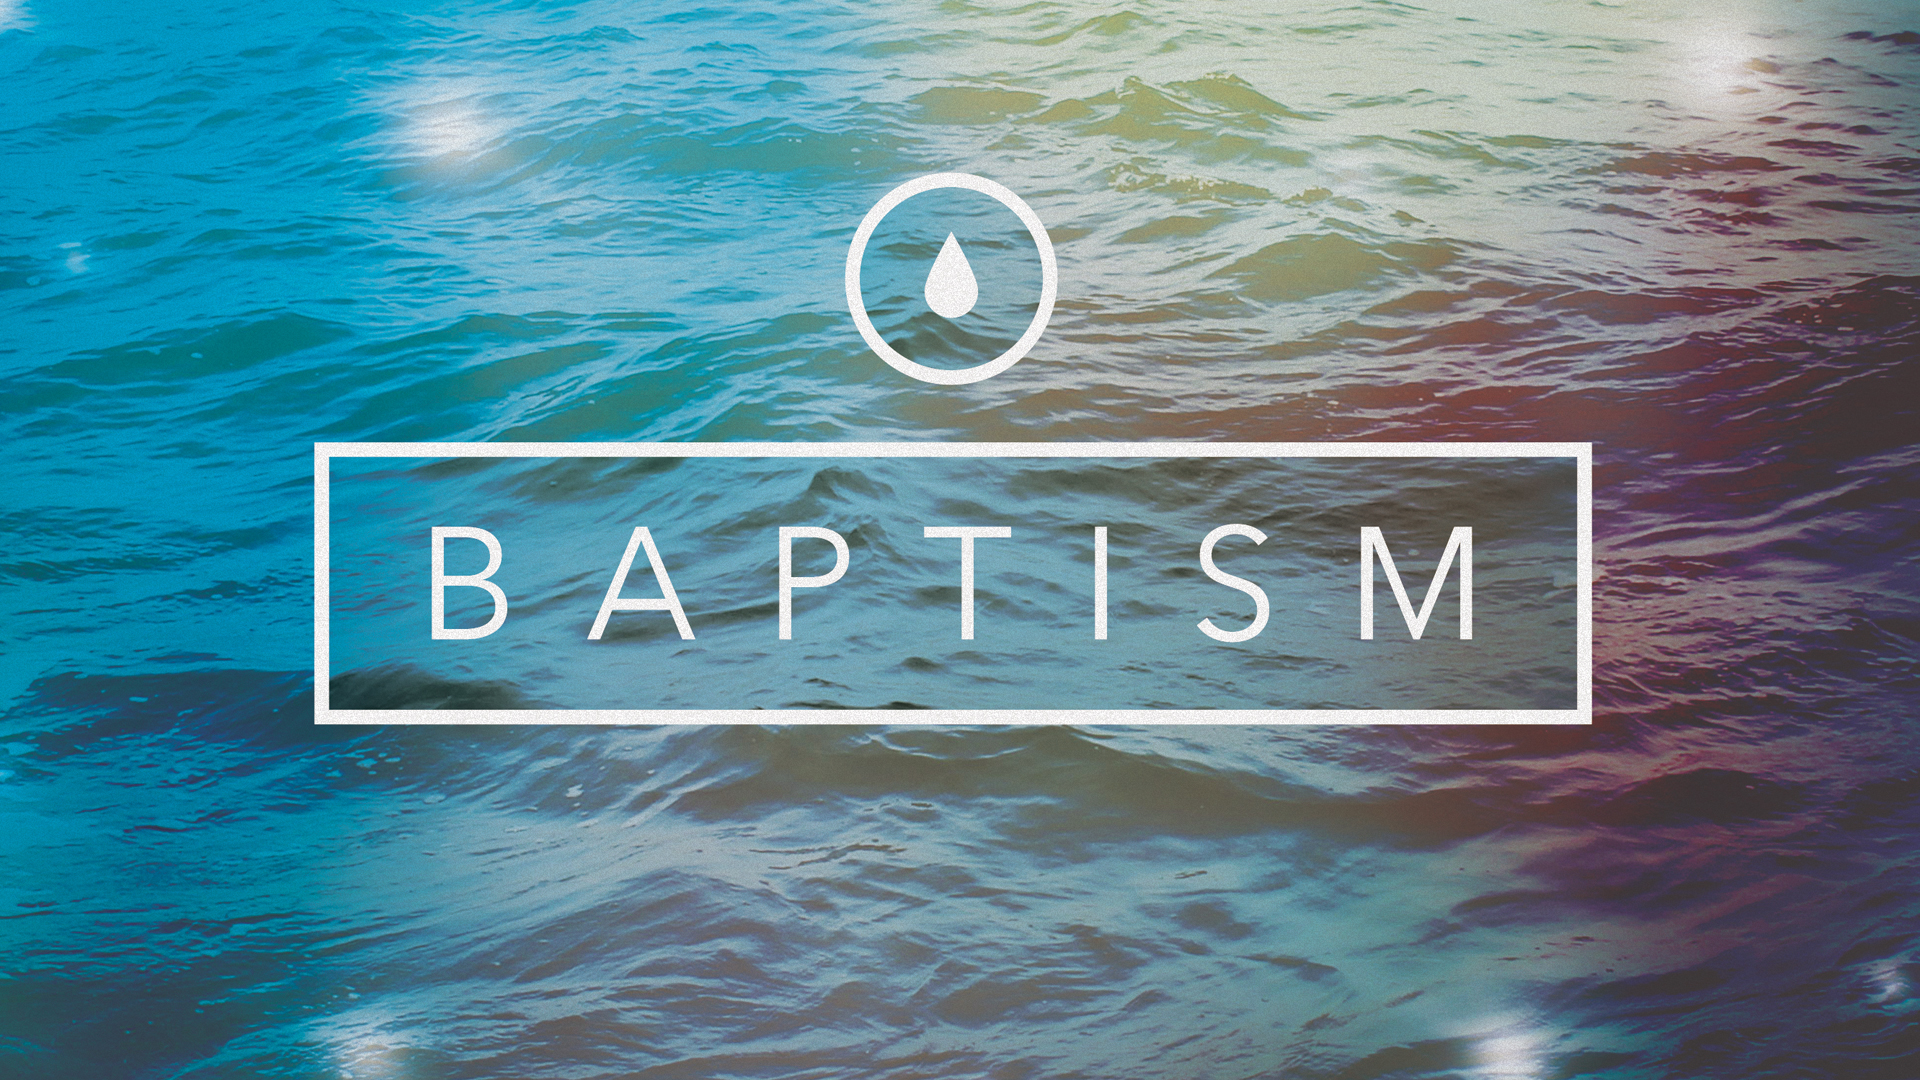 Baptism - Are you ready to take the next step? Attend the baptism class to discover the importance of baptism and its significance to our faith journey.Drop by the Connect Center or visit the Baptism Ministry team for more information. Email Dave.Love@clovishills.com.